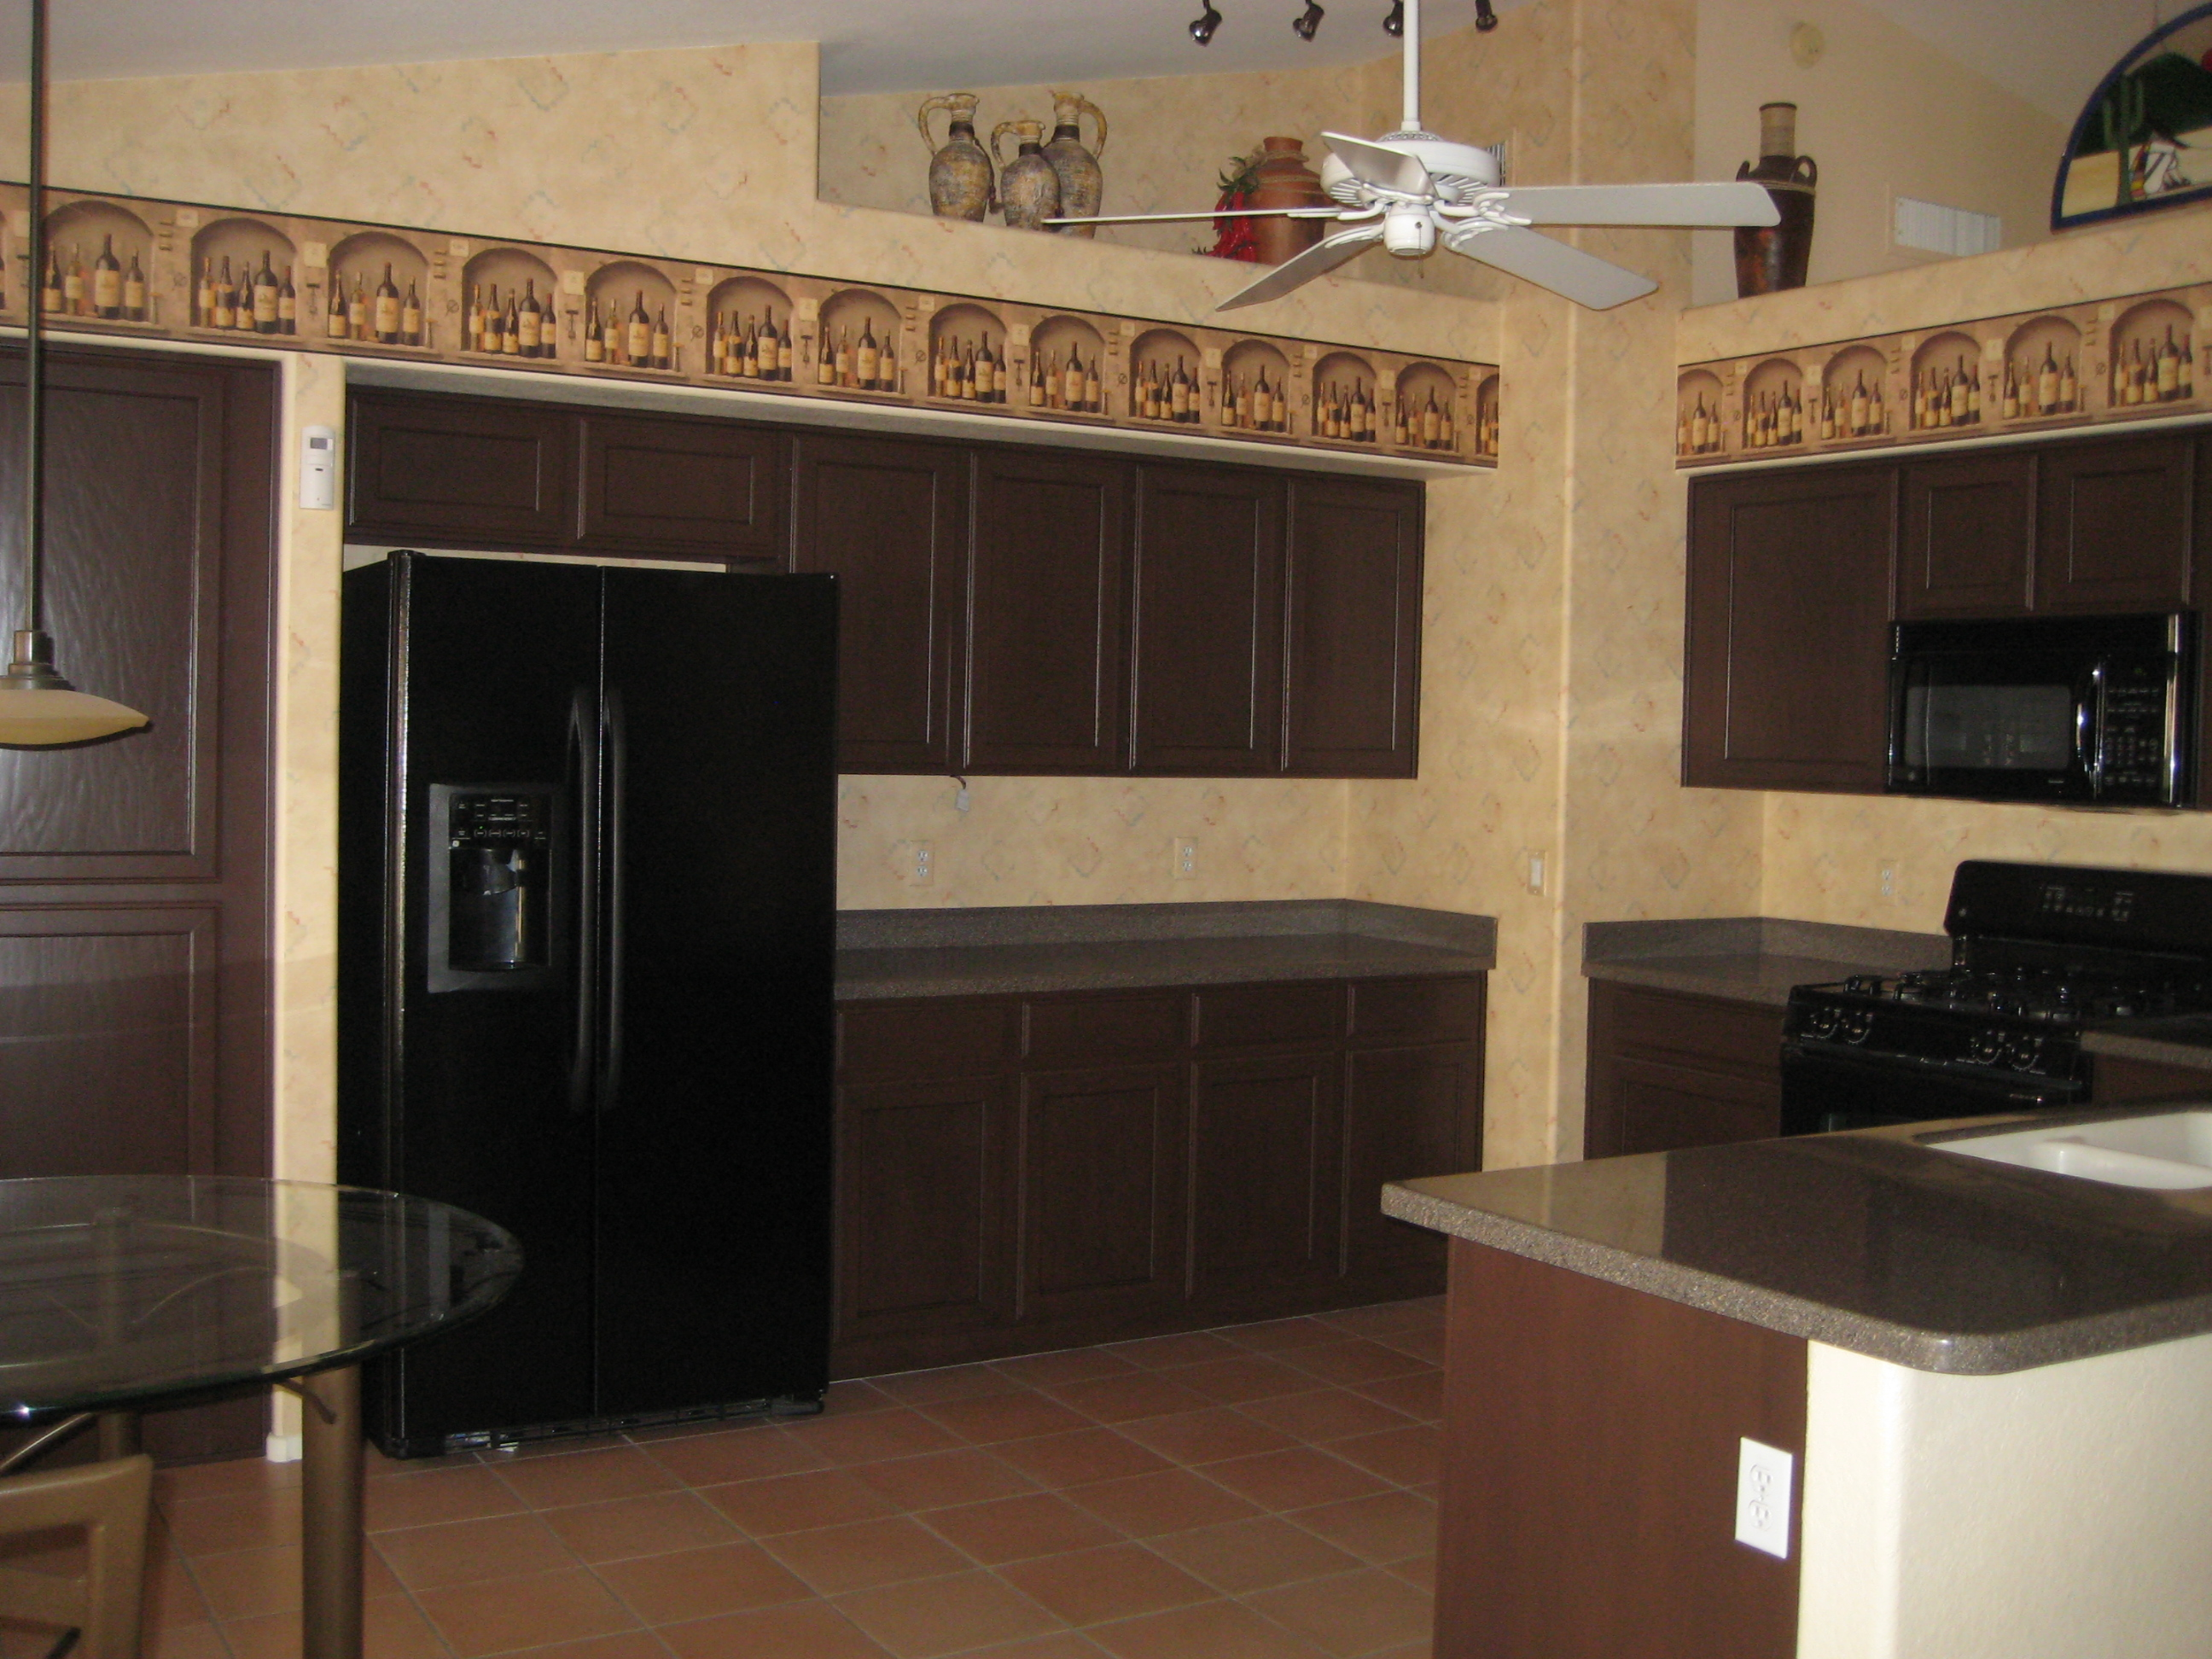 Cabinet Refinishing Gallery | Cabinet Coatings of America